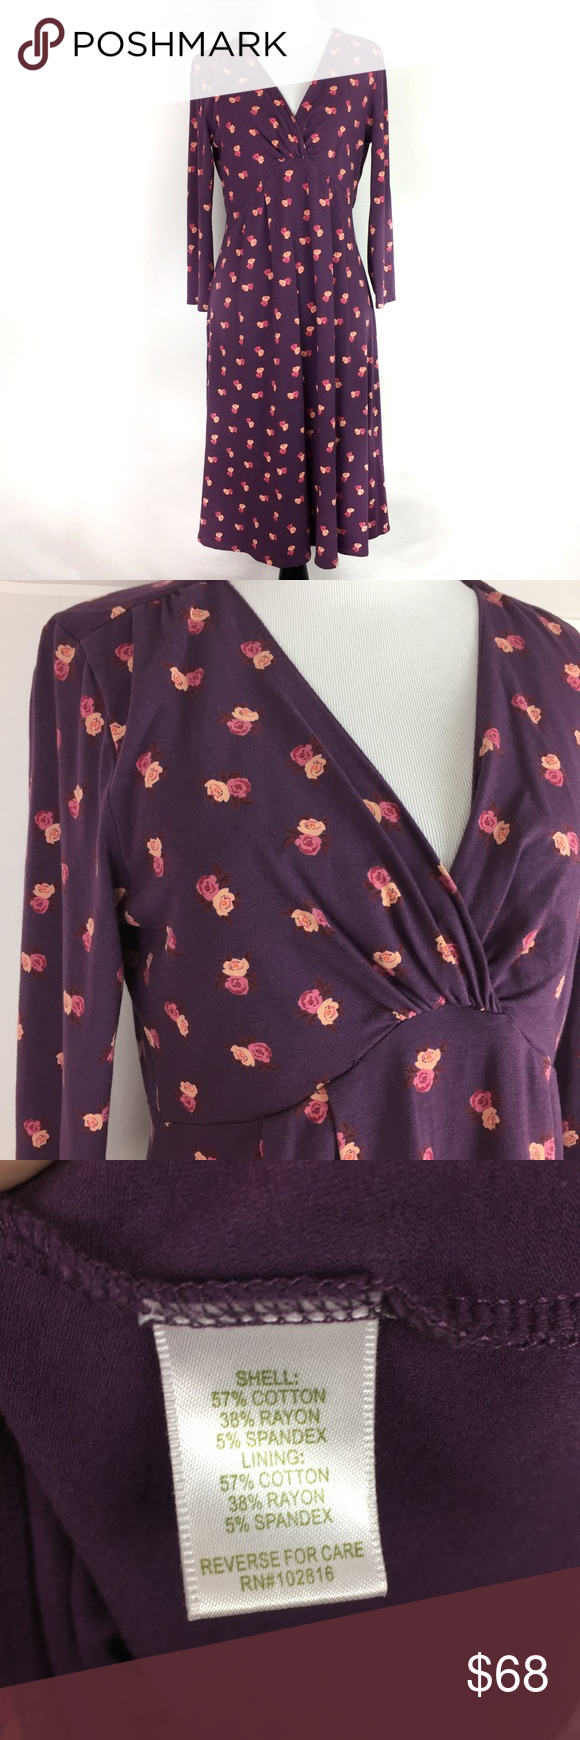 """Garnet Hill Purple Floral V-Neck 3/4 Sleeve Dress •Garnet Hill Purple Floral V-Neck 3/4 Sleeve Dress •Women's Size XS •In excellent used condition •57% cotton/ 38% rayon/ 5% spandex •All measurements are approximate: 39"""" length, 13"""" sleeve length, 18"""" across chest, 18"""" across waist, 24"""" across hips Garnet Hill Dresses"""